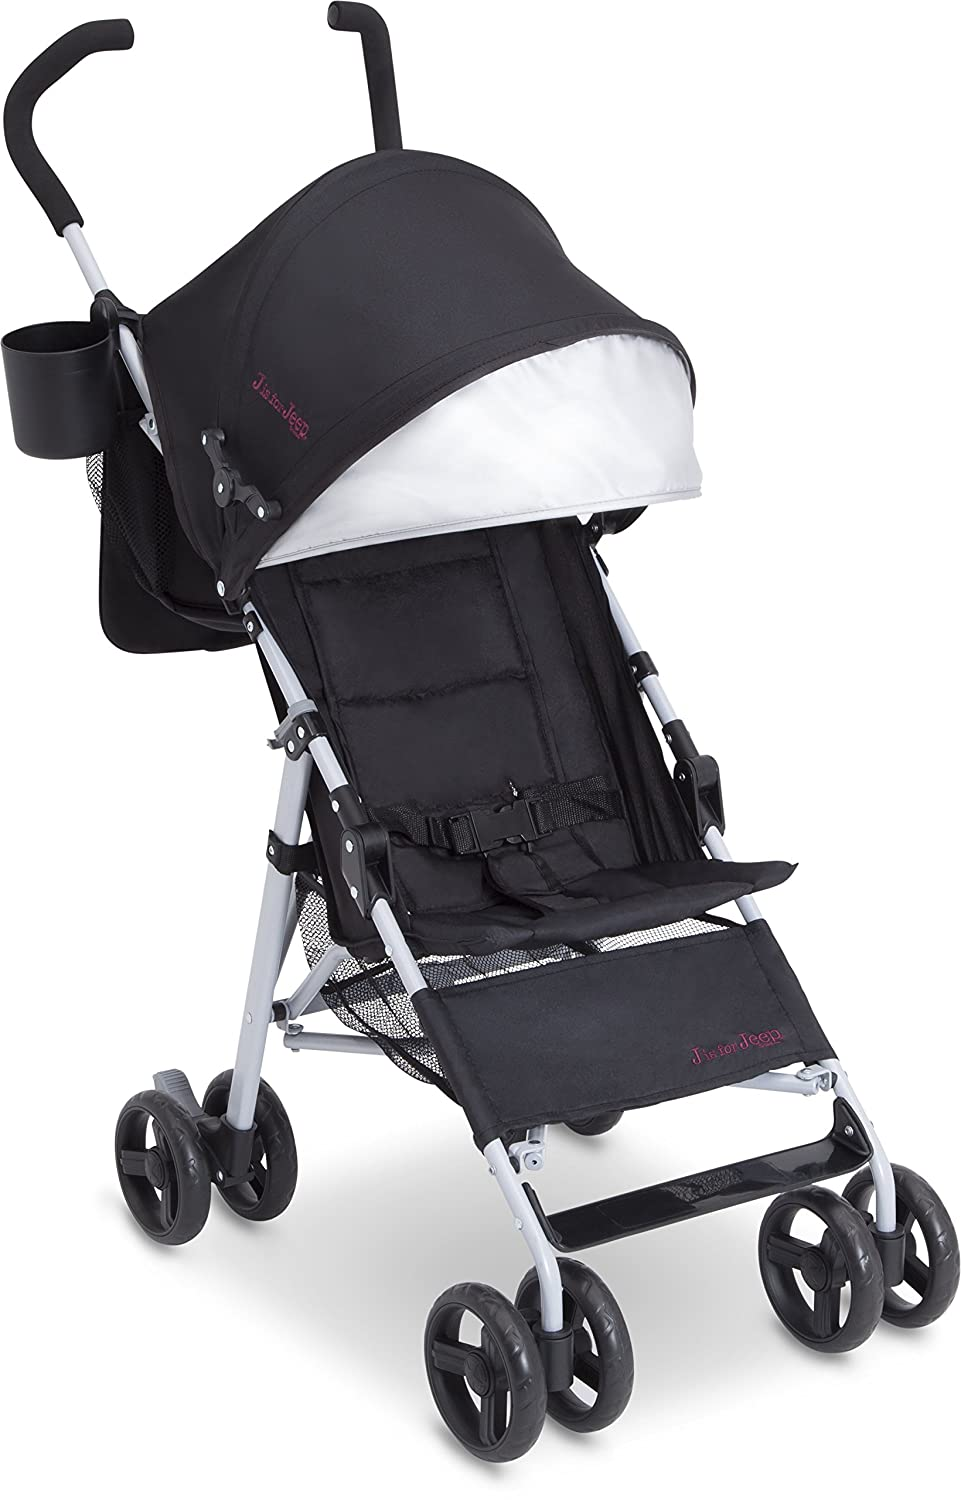 J is for Jeep Brand North Star Stroller, Black/Grey Delta Children 33098-2277